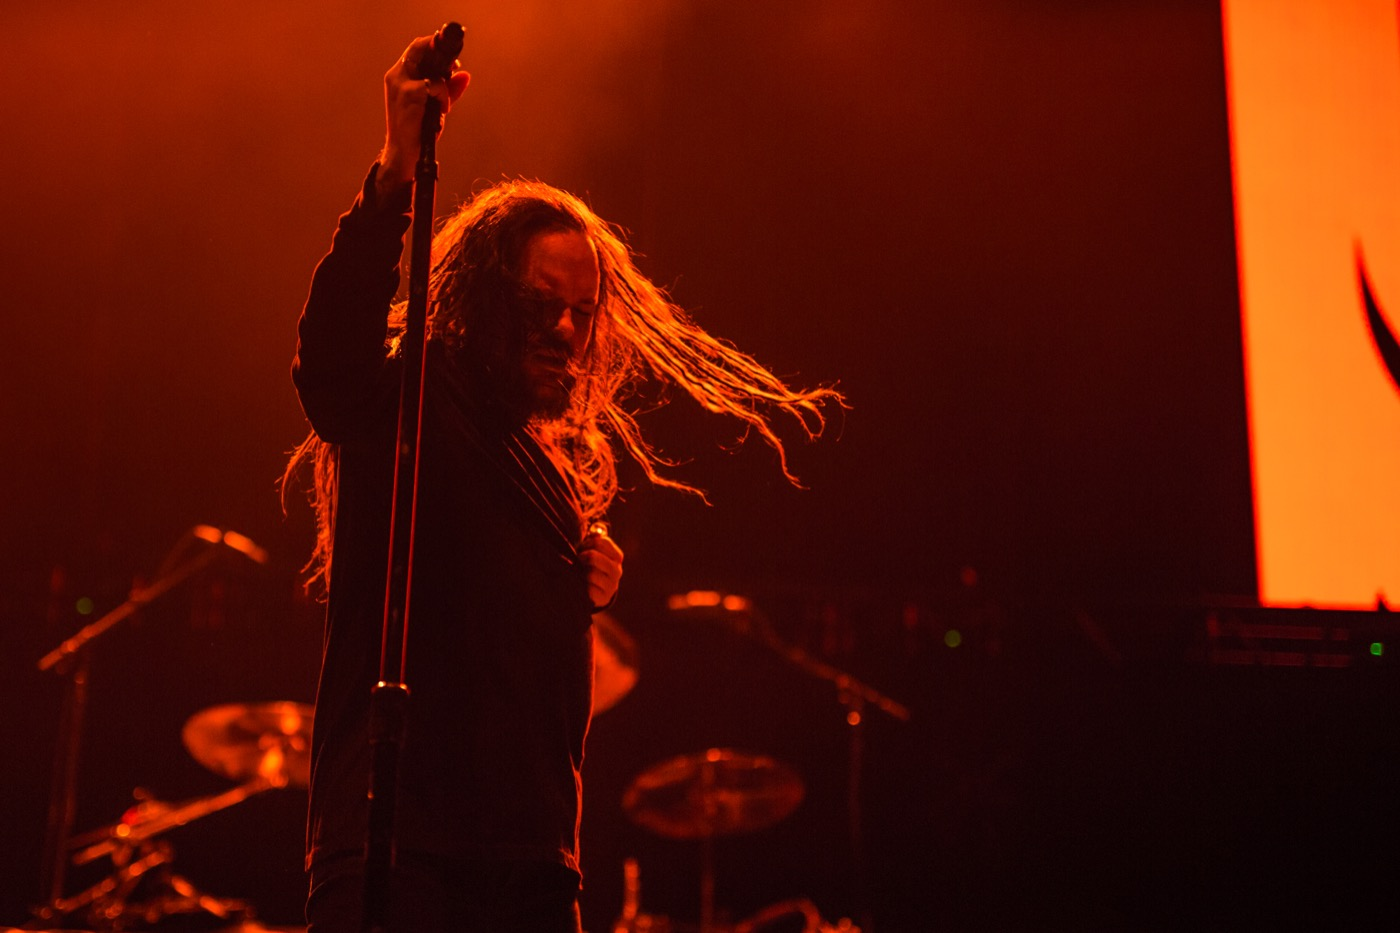 Jonathan Davis at OZZFEST 2018 @ The Forum 12/31/18. Photo by Derrick K. Lee, Esq. (@Methodman13) for www.BlurredCulture.com.